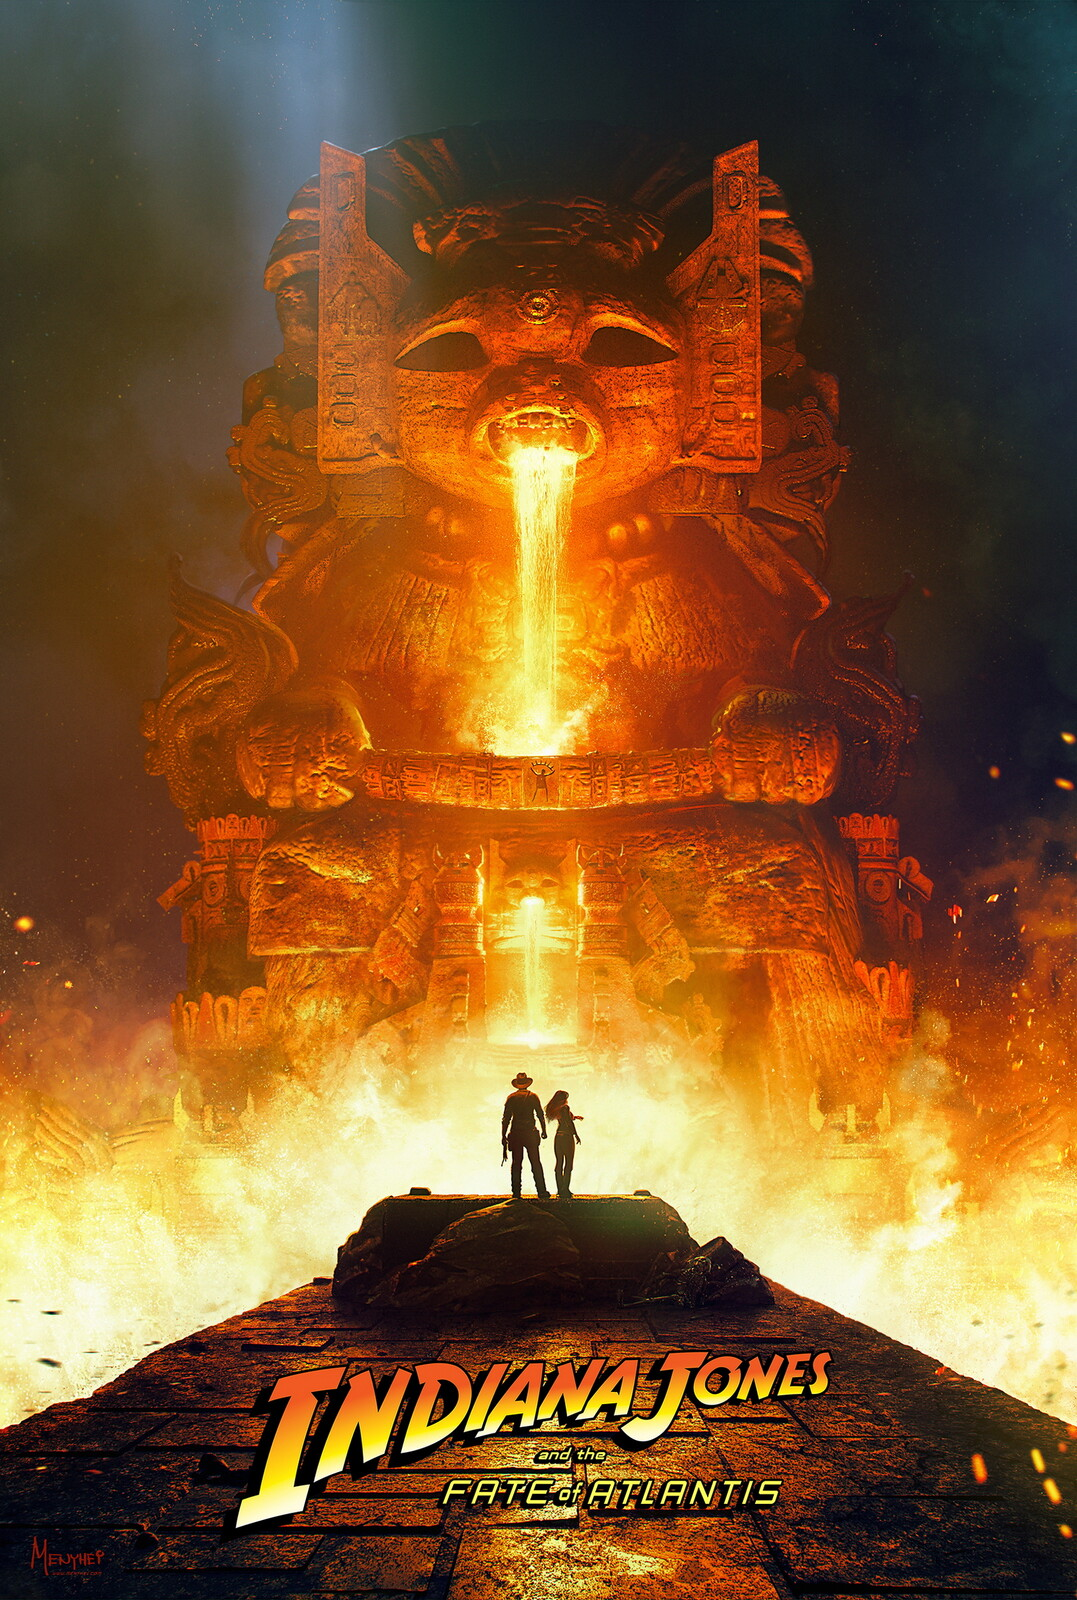 Indiana Jones and the Fate of Atlantis fan poster